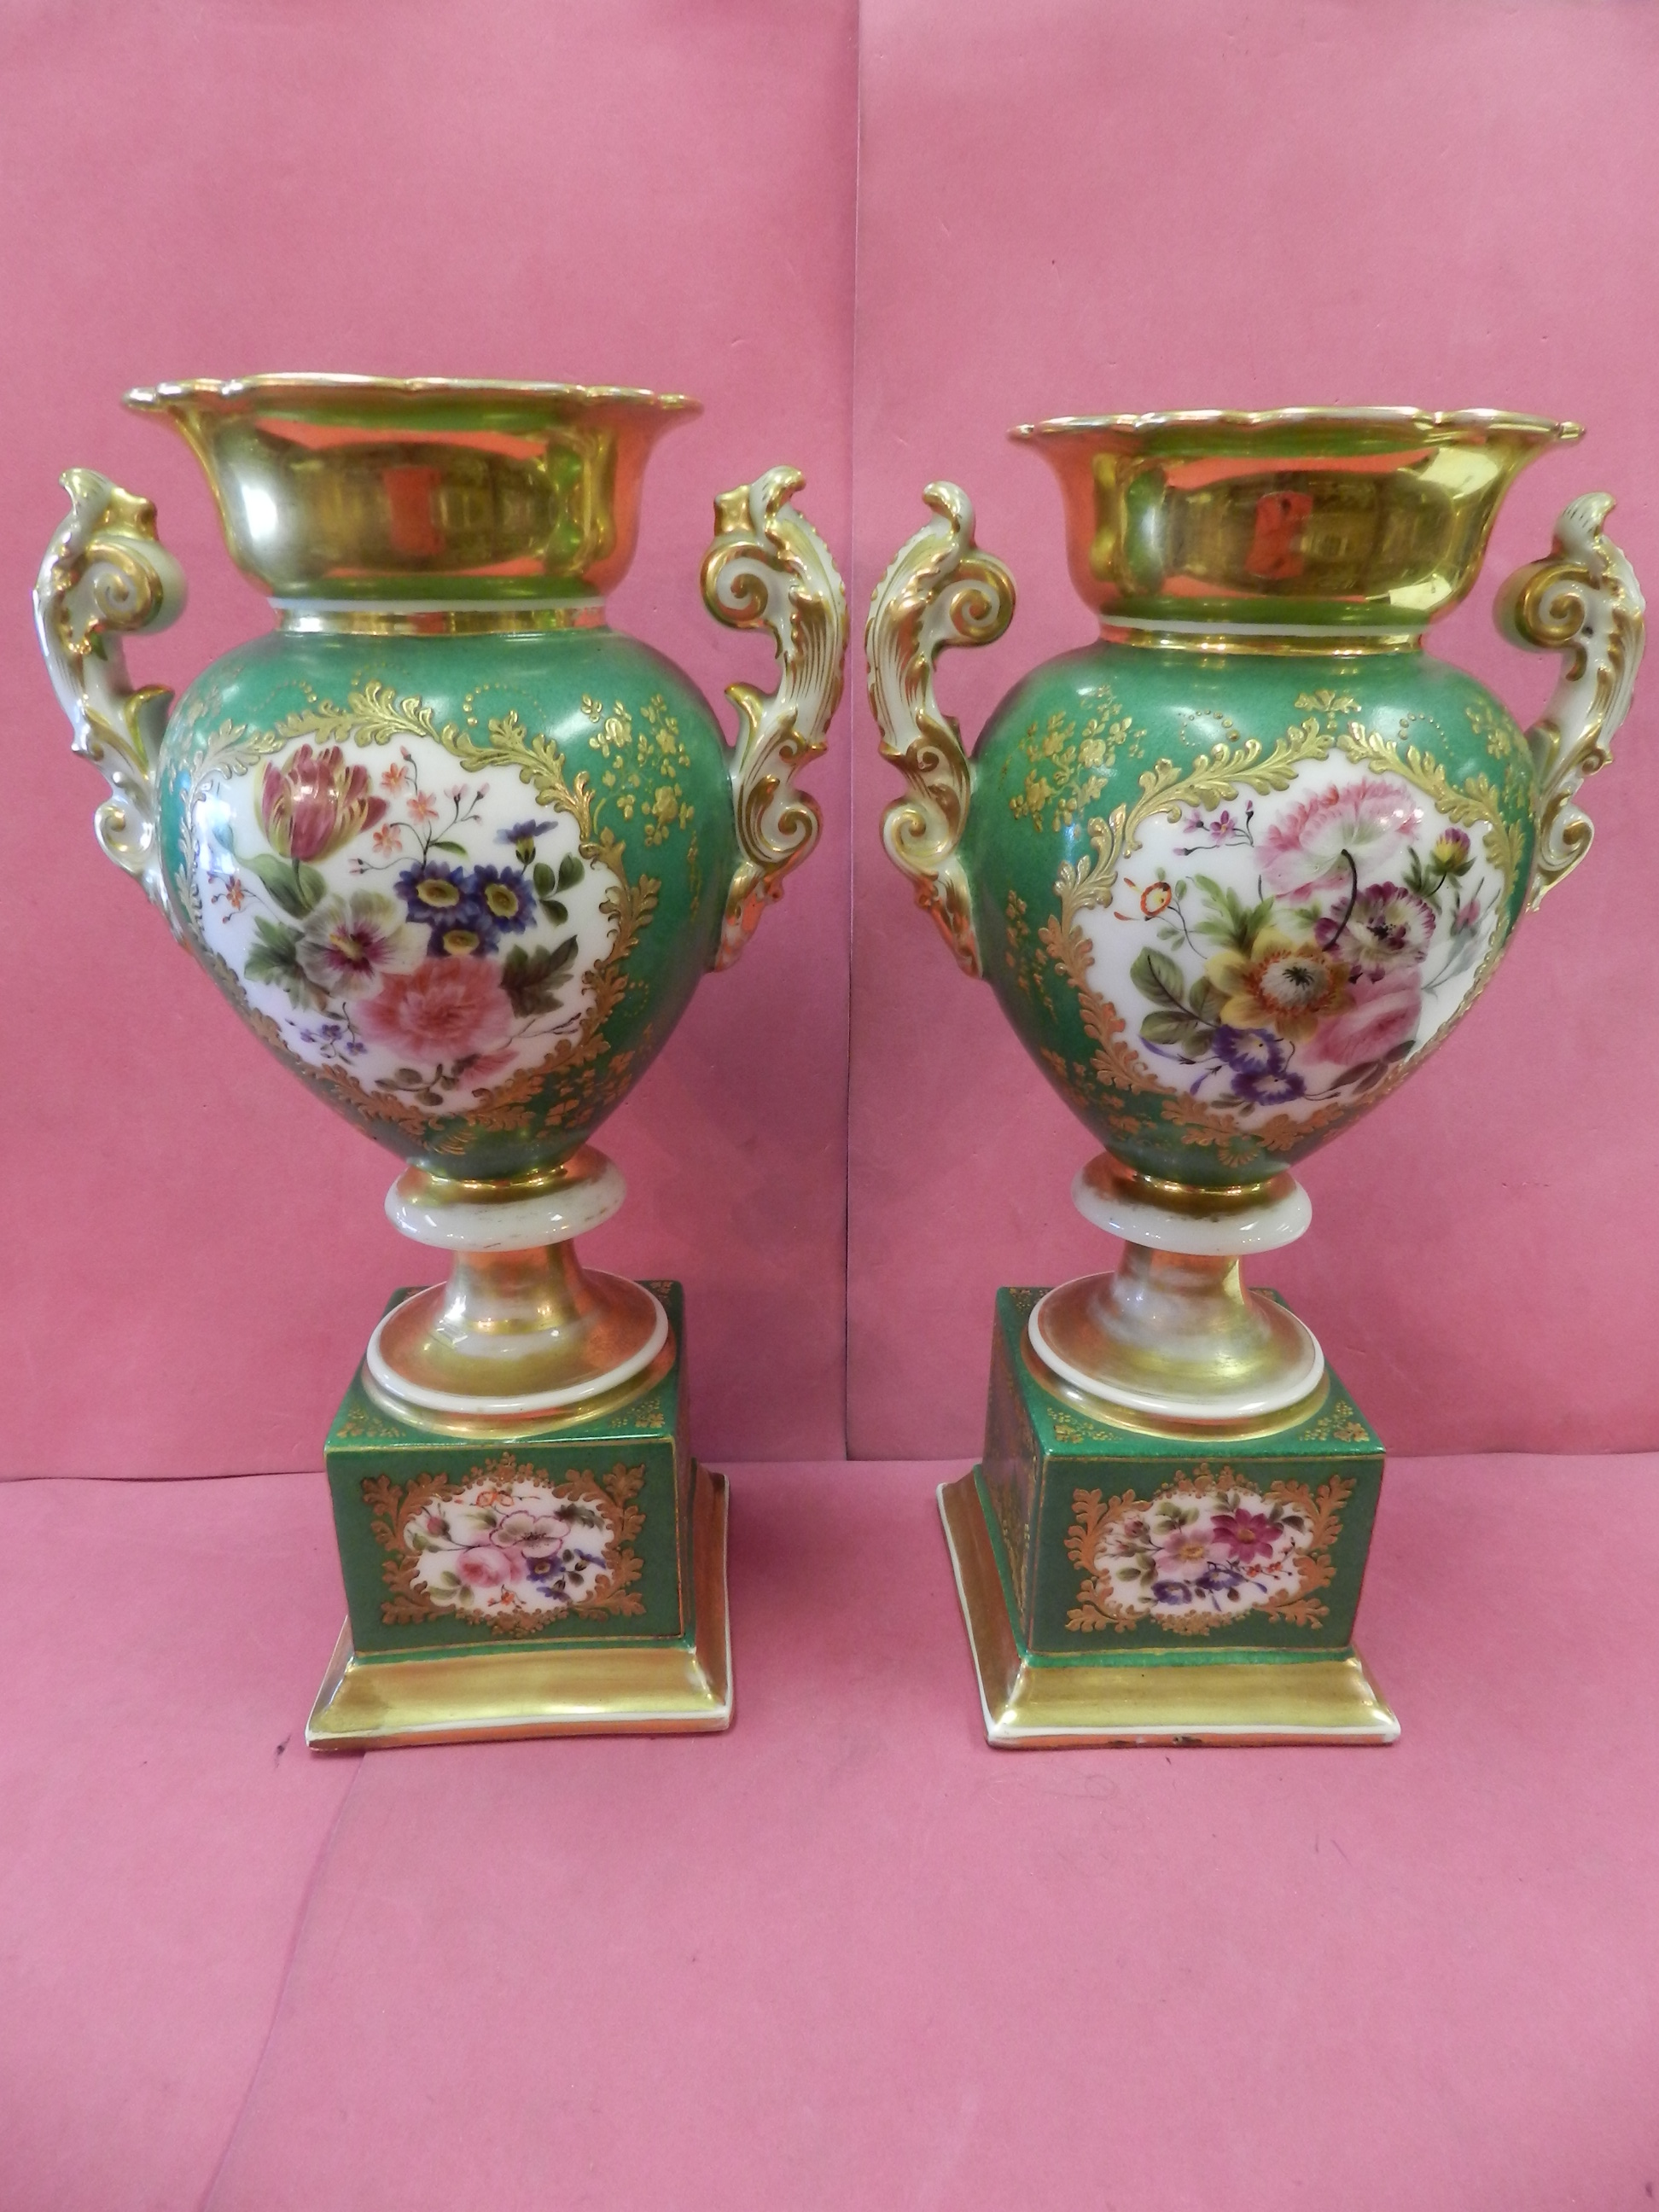 19TH CENTURY PORCELAIN URNS